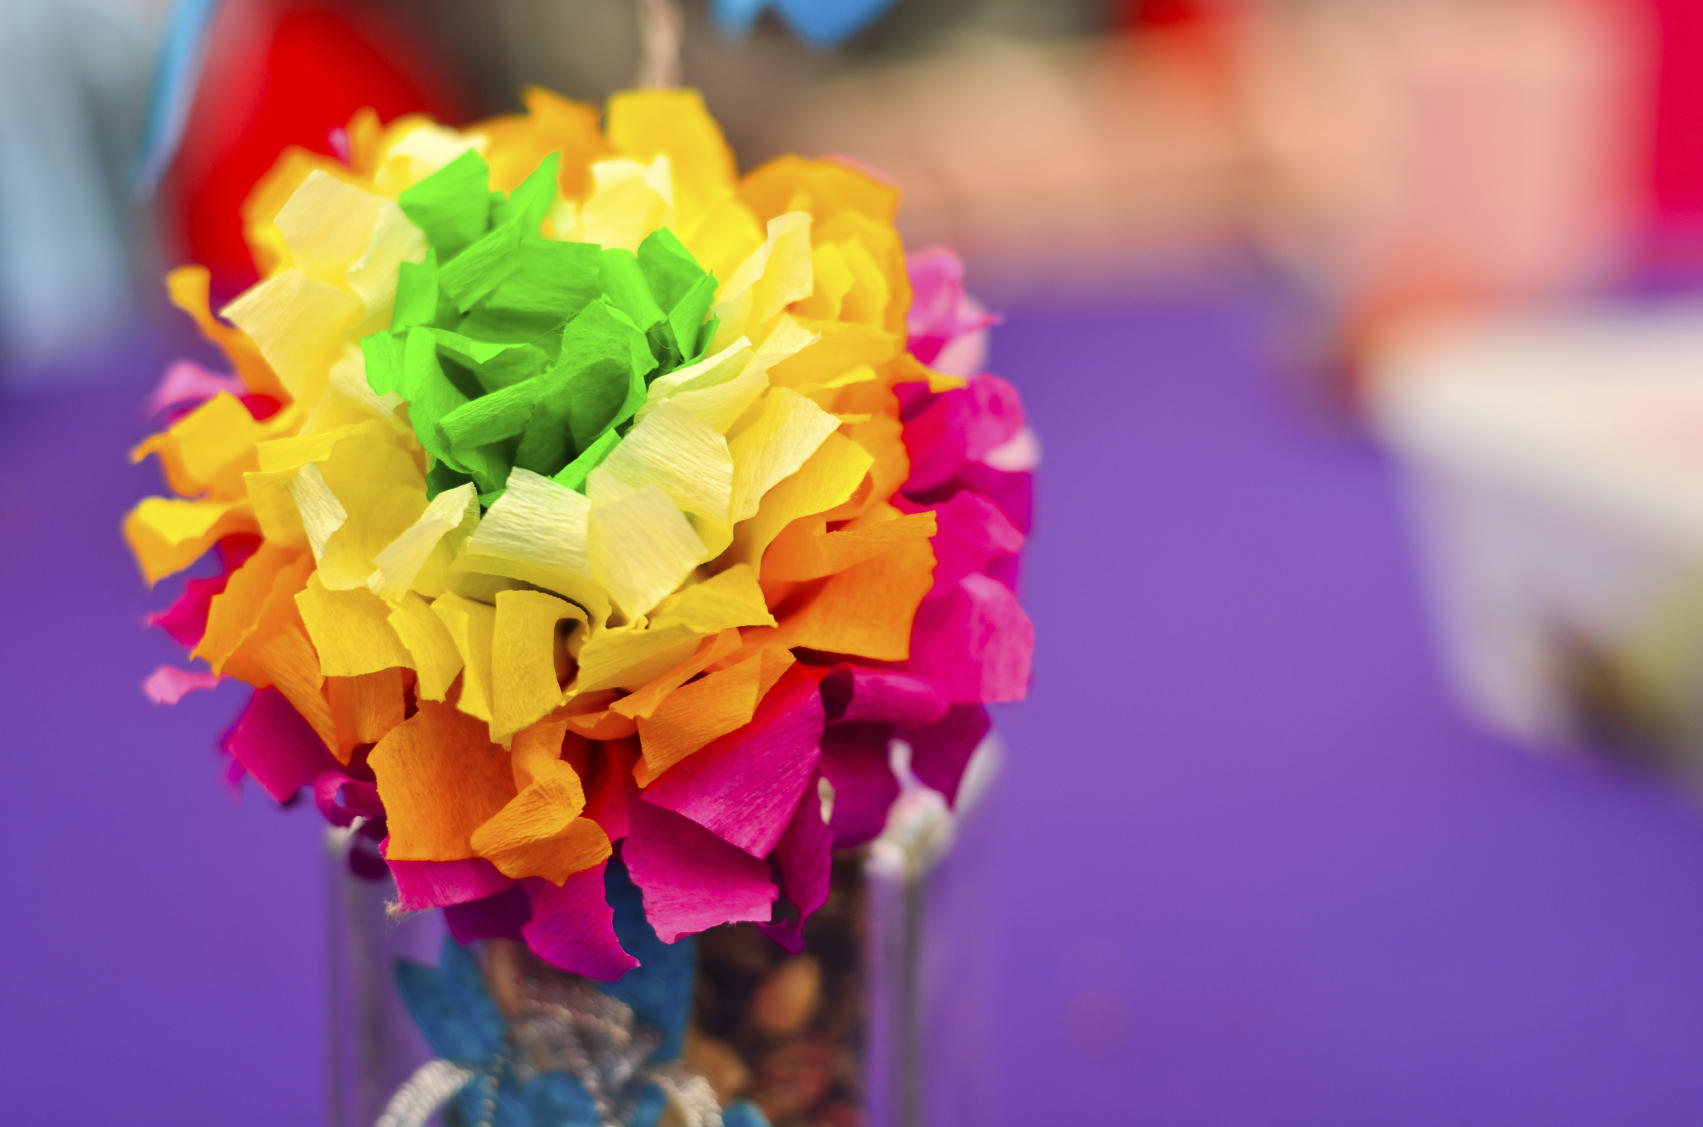 5 Clever Ways To Use Tissue Paper To Make Beautiful Crafts Tlcme Tlc